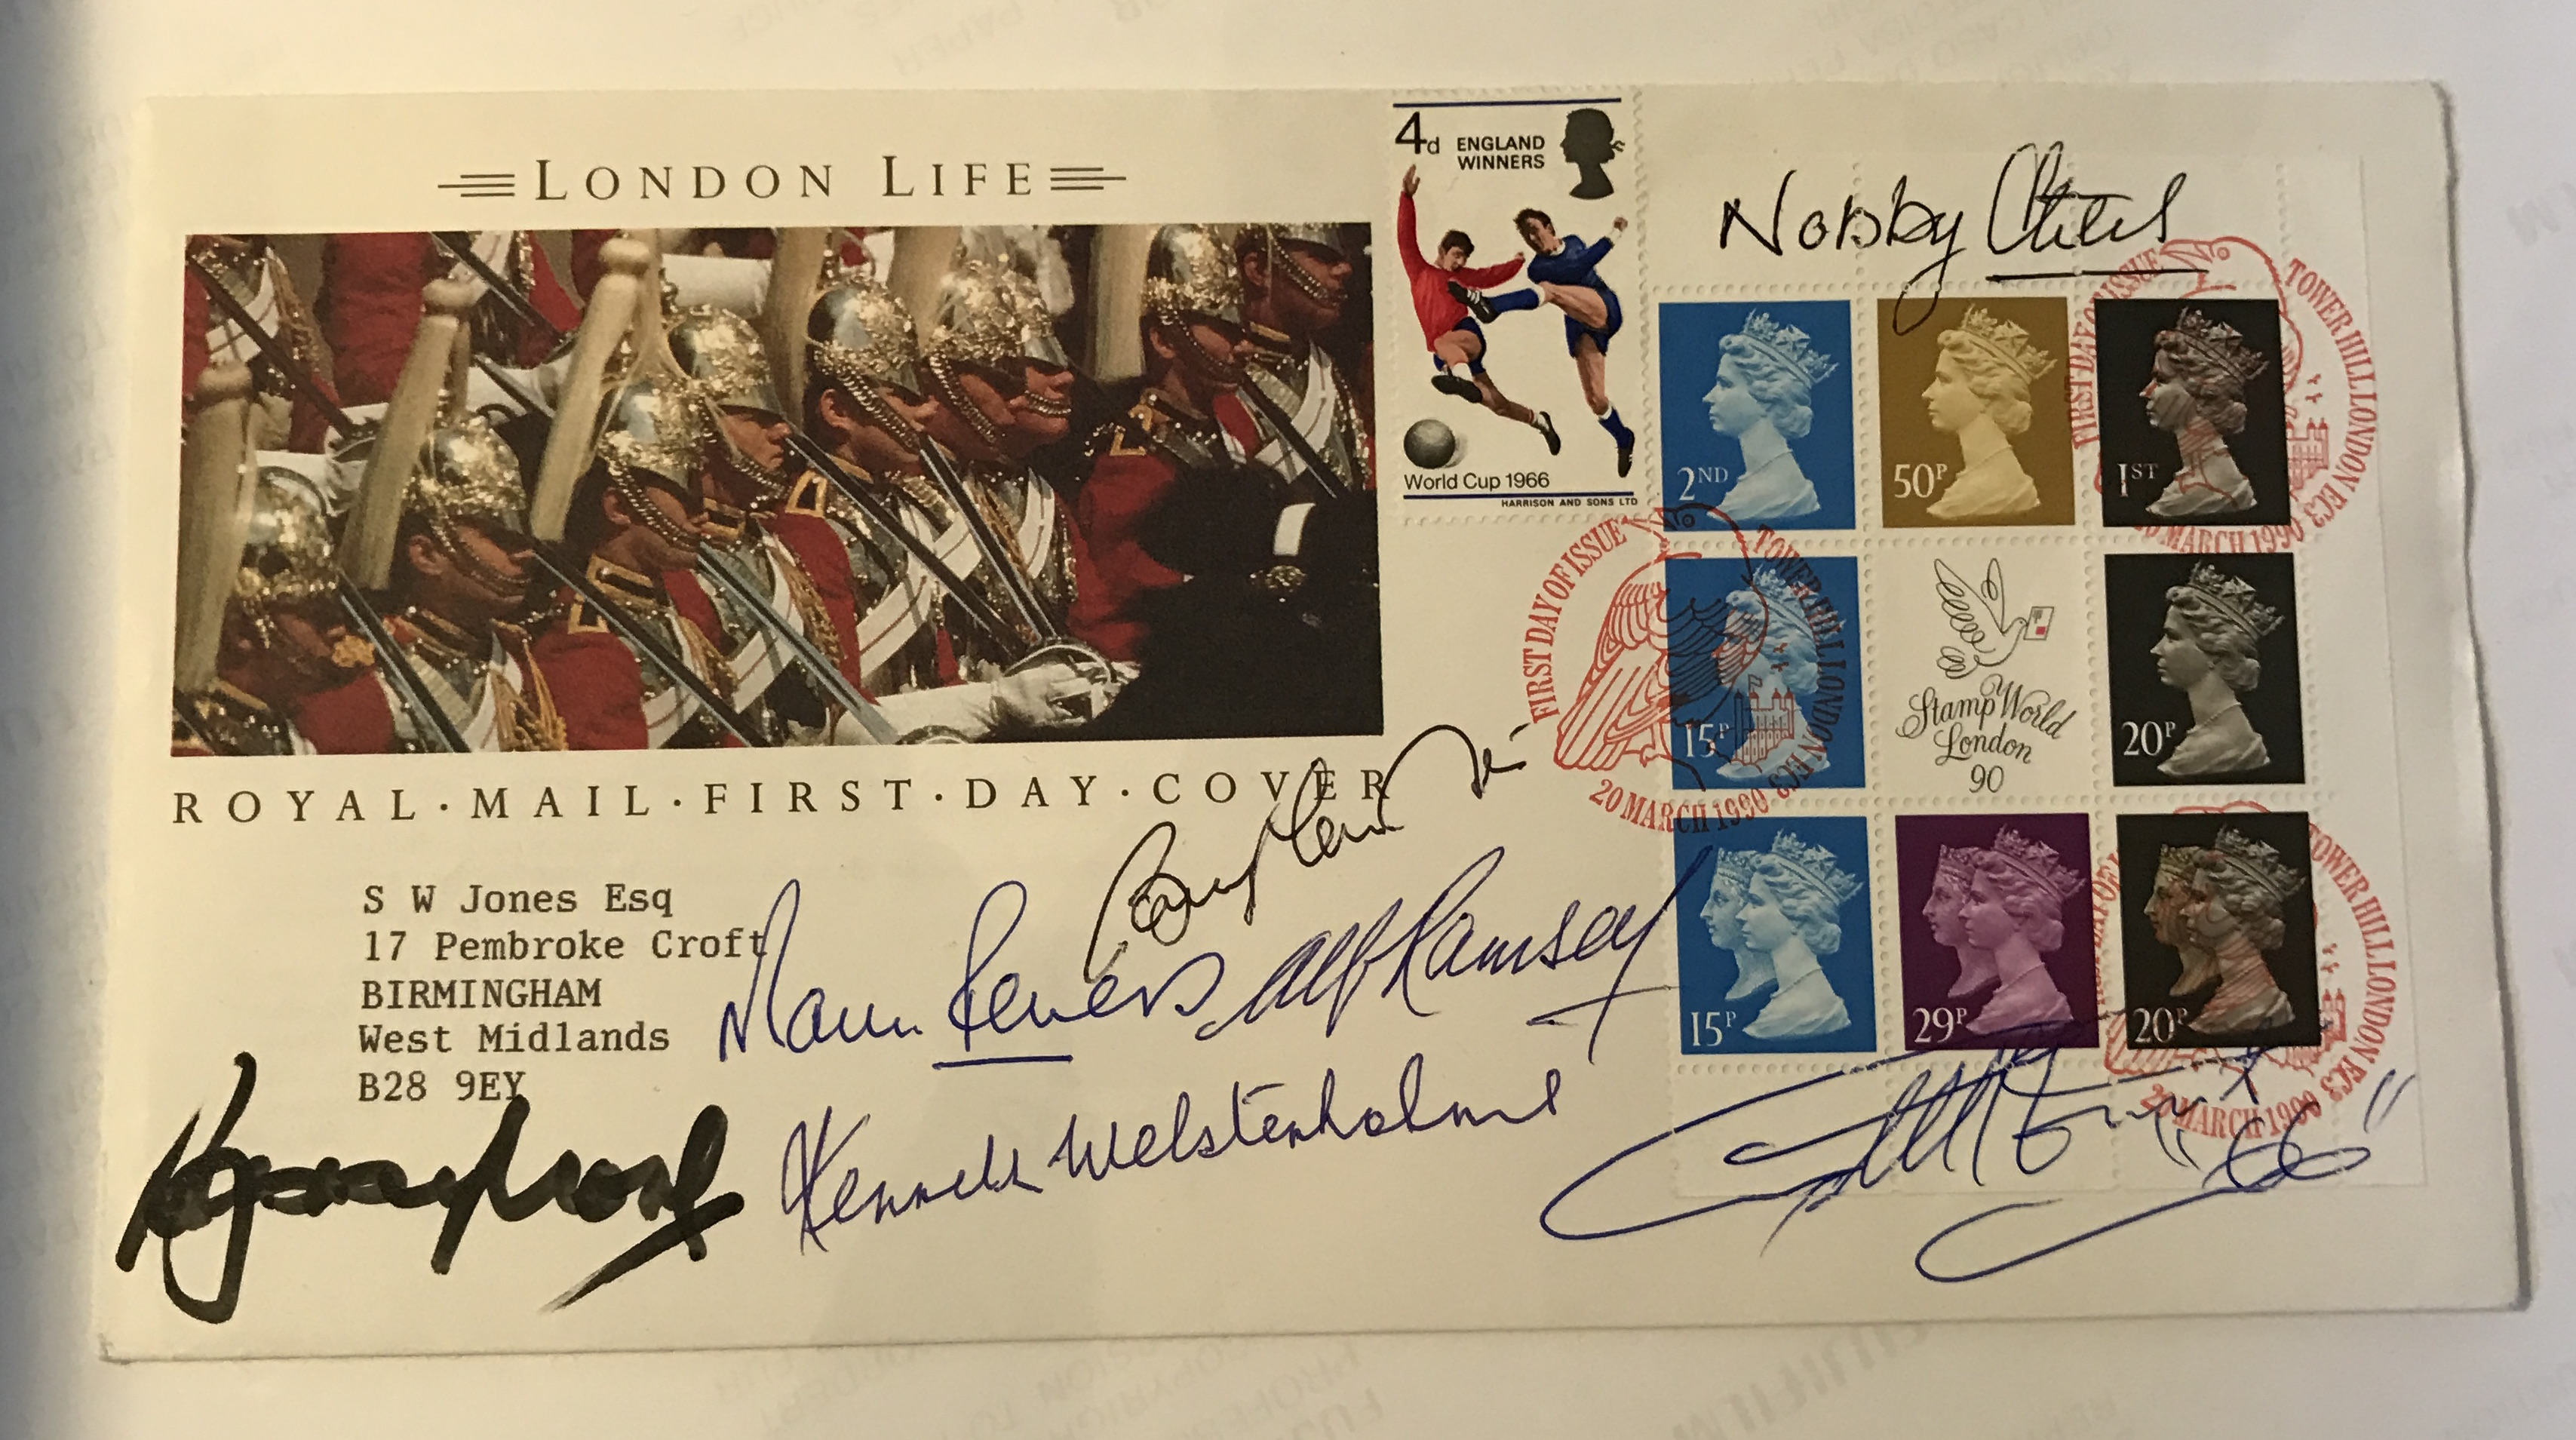 ENGLAND - POSTAL COVER MULTI SIGNED BY THE WORLD CUP 1966 TEAM INCLUDING ALF RAMSEY